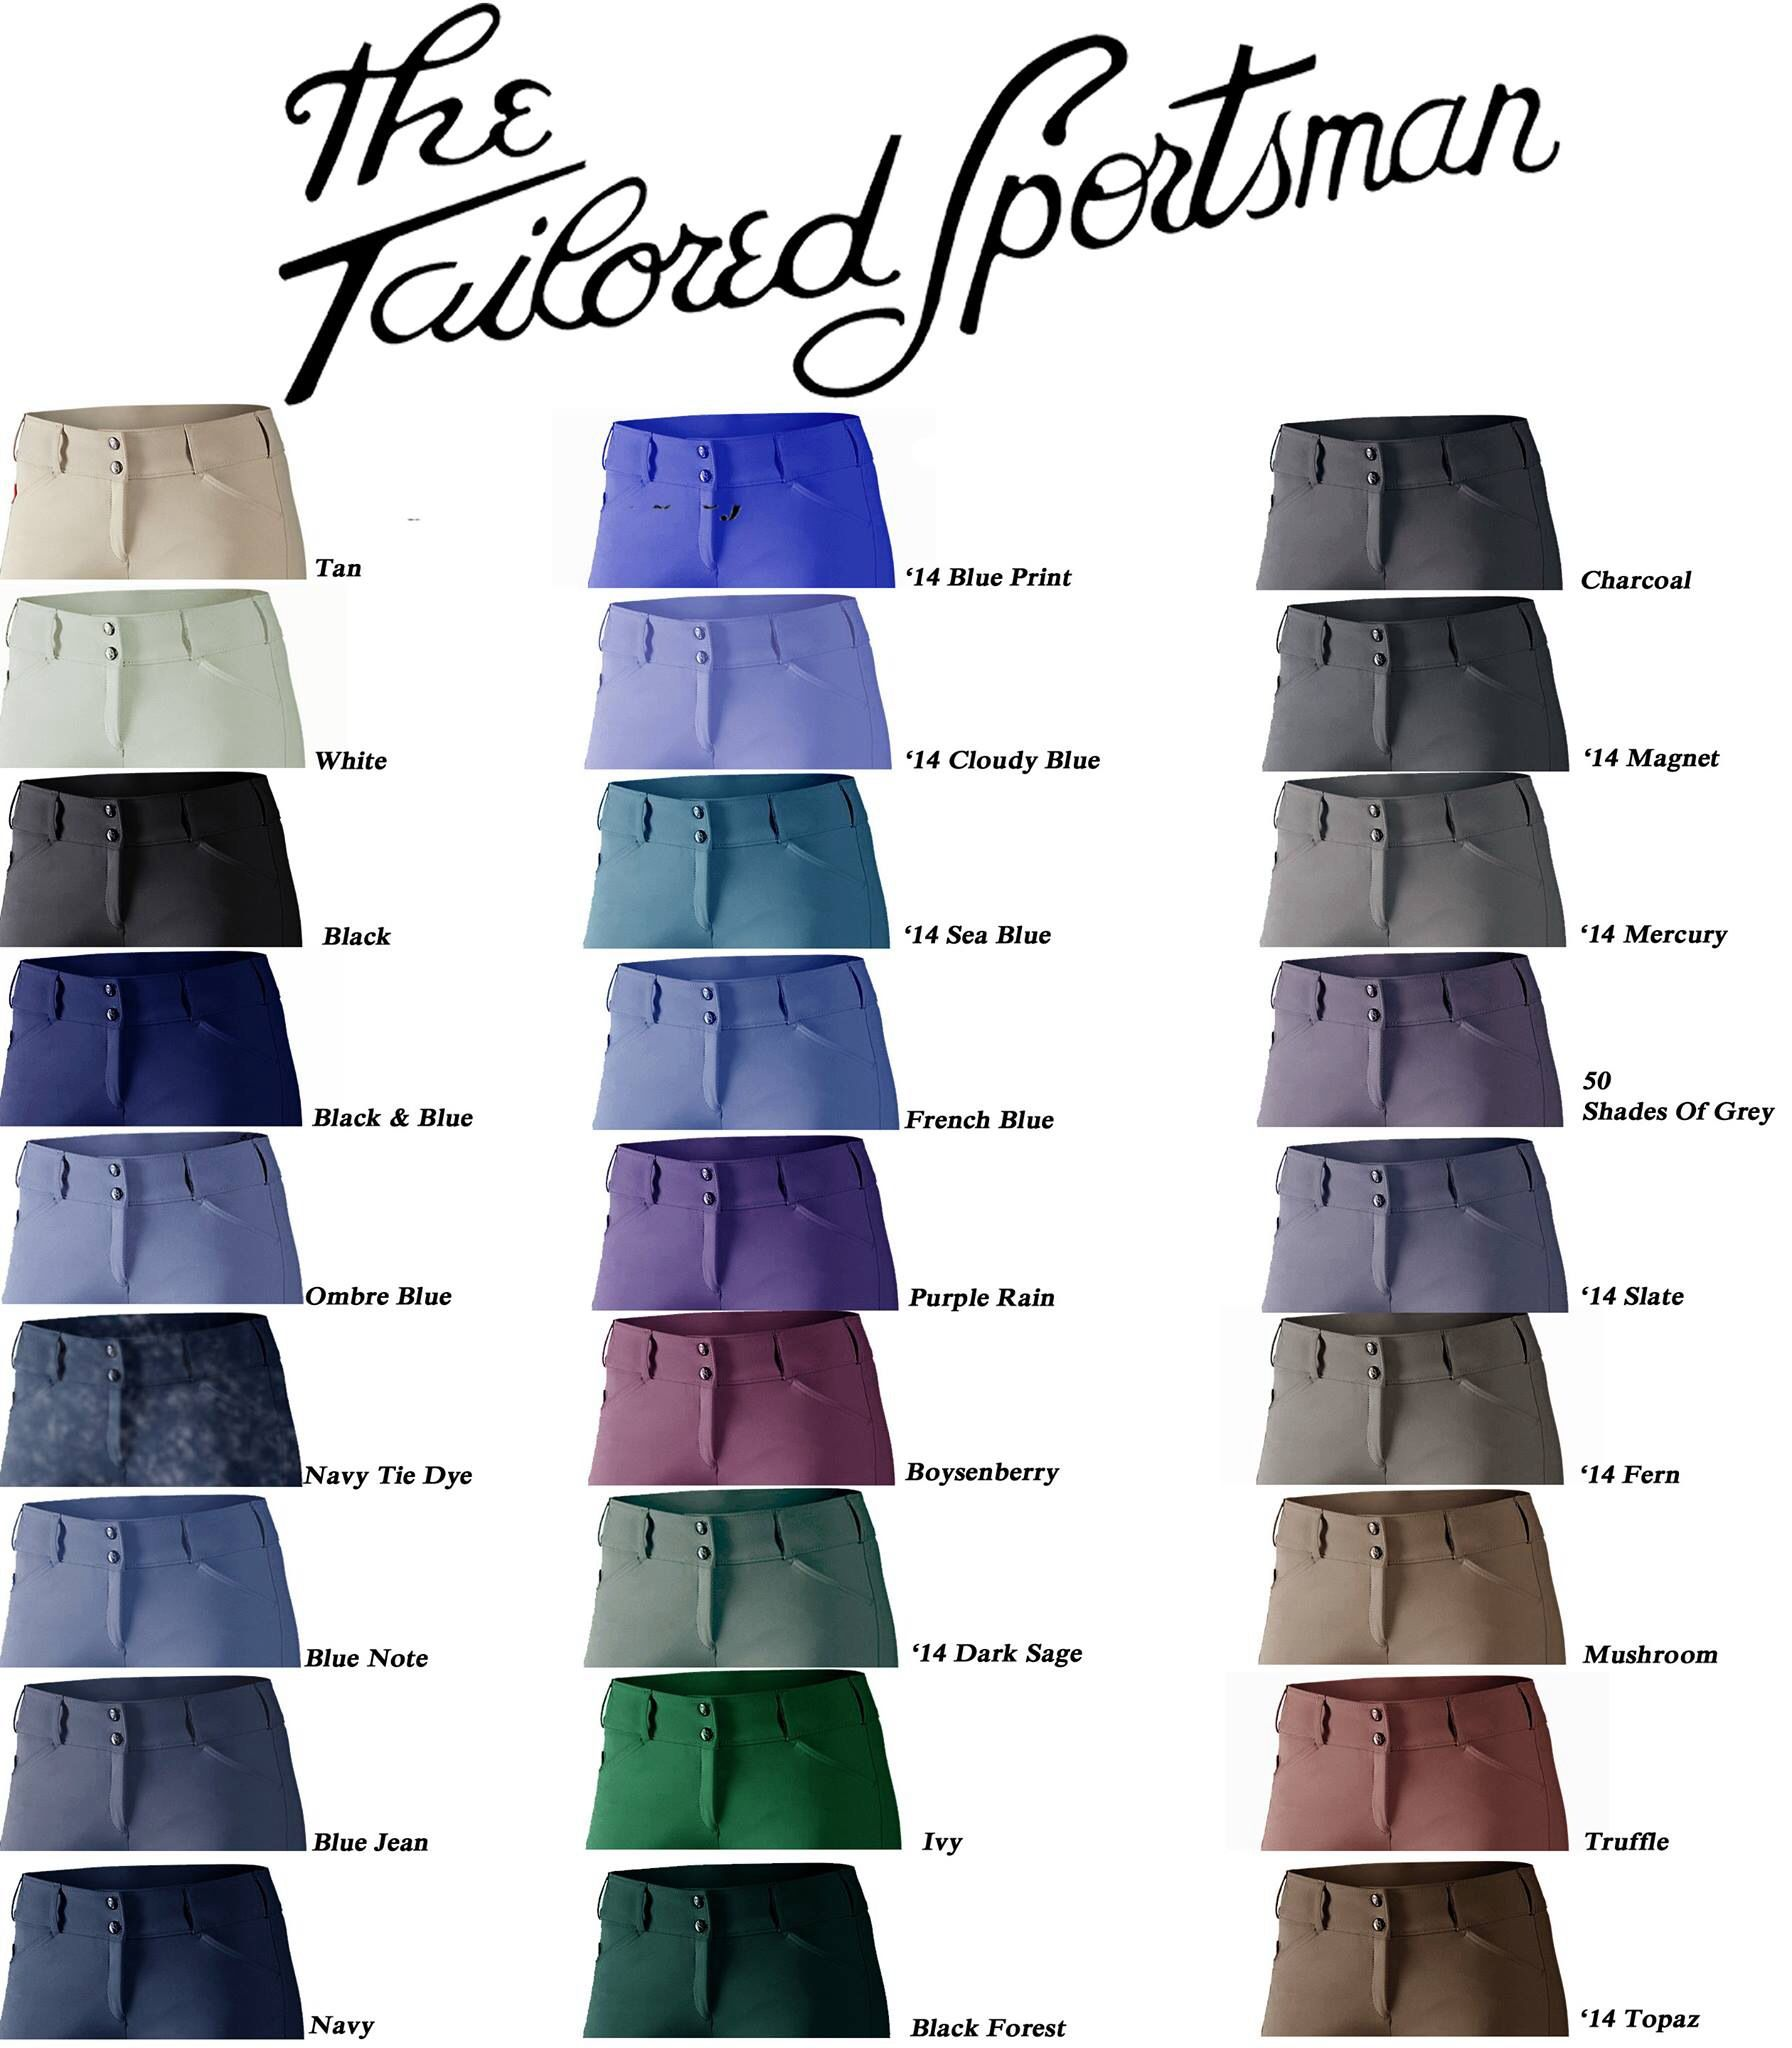 Tailored sportsman low or mid rise side zip or front zip size 32r